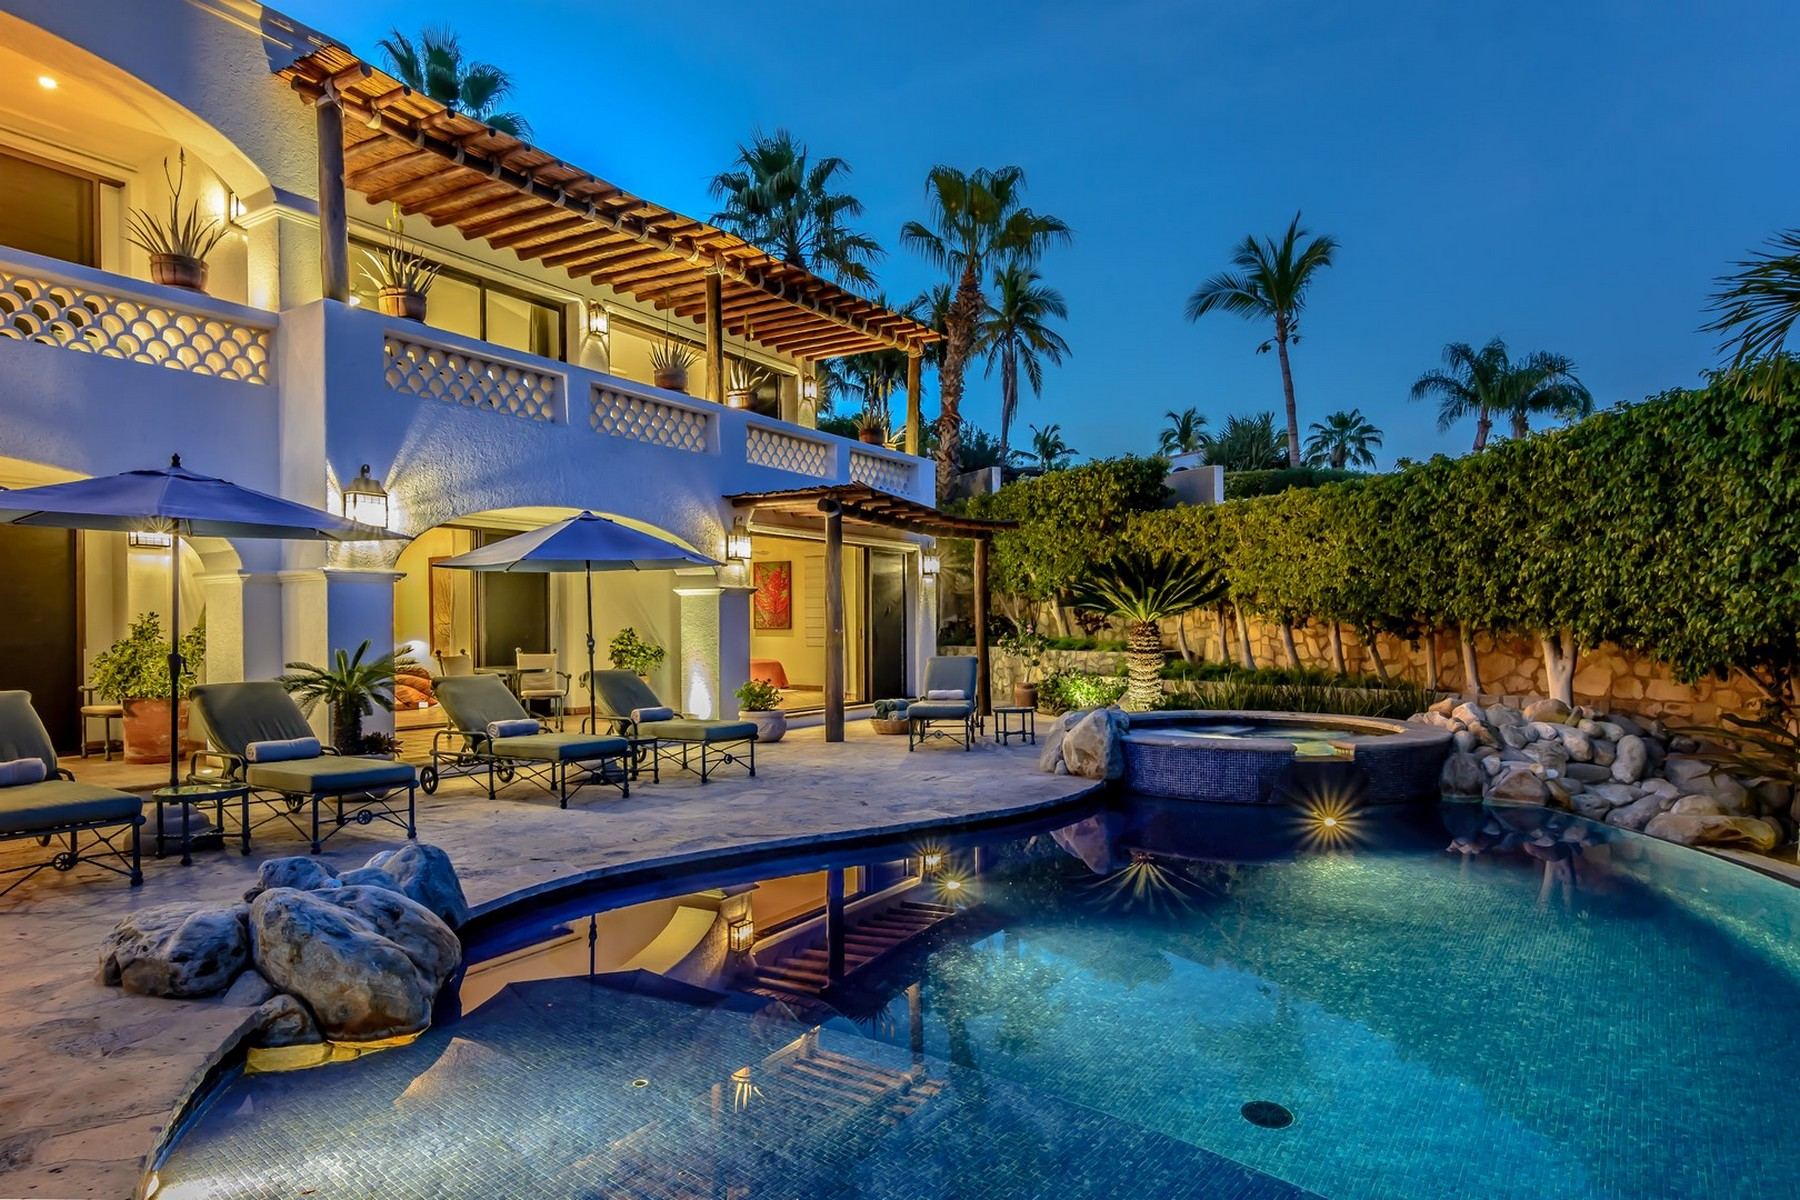 Single Family Home for Sale at CASA JUAN Caleta Palmilla San Jose Del Cabo, Baja California Sur 23453 Mexico